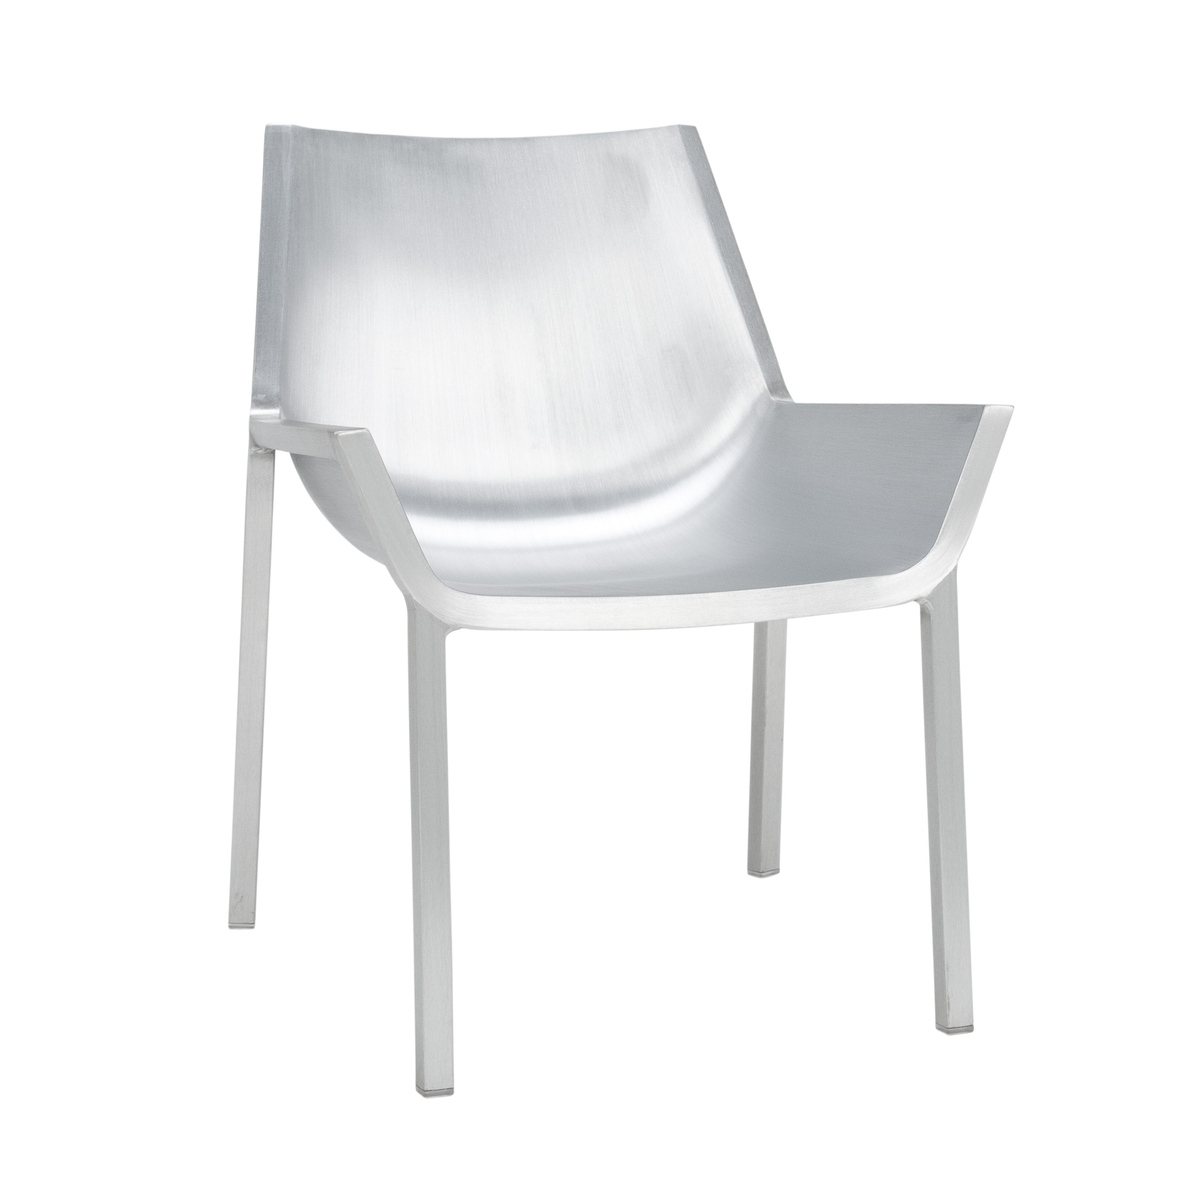 SEZZ LOUNGE CHAIR